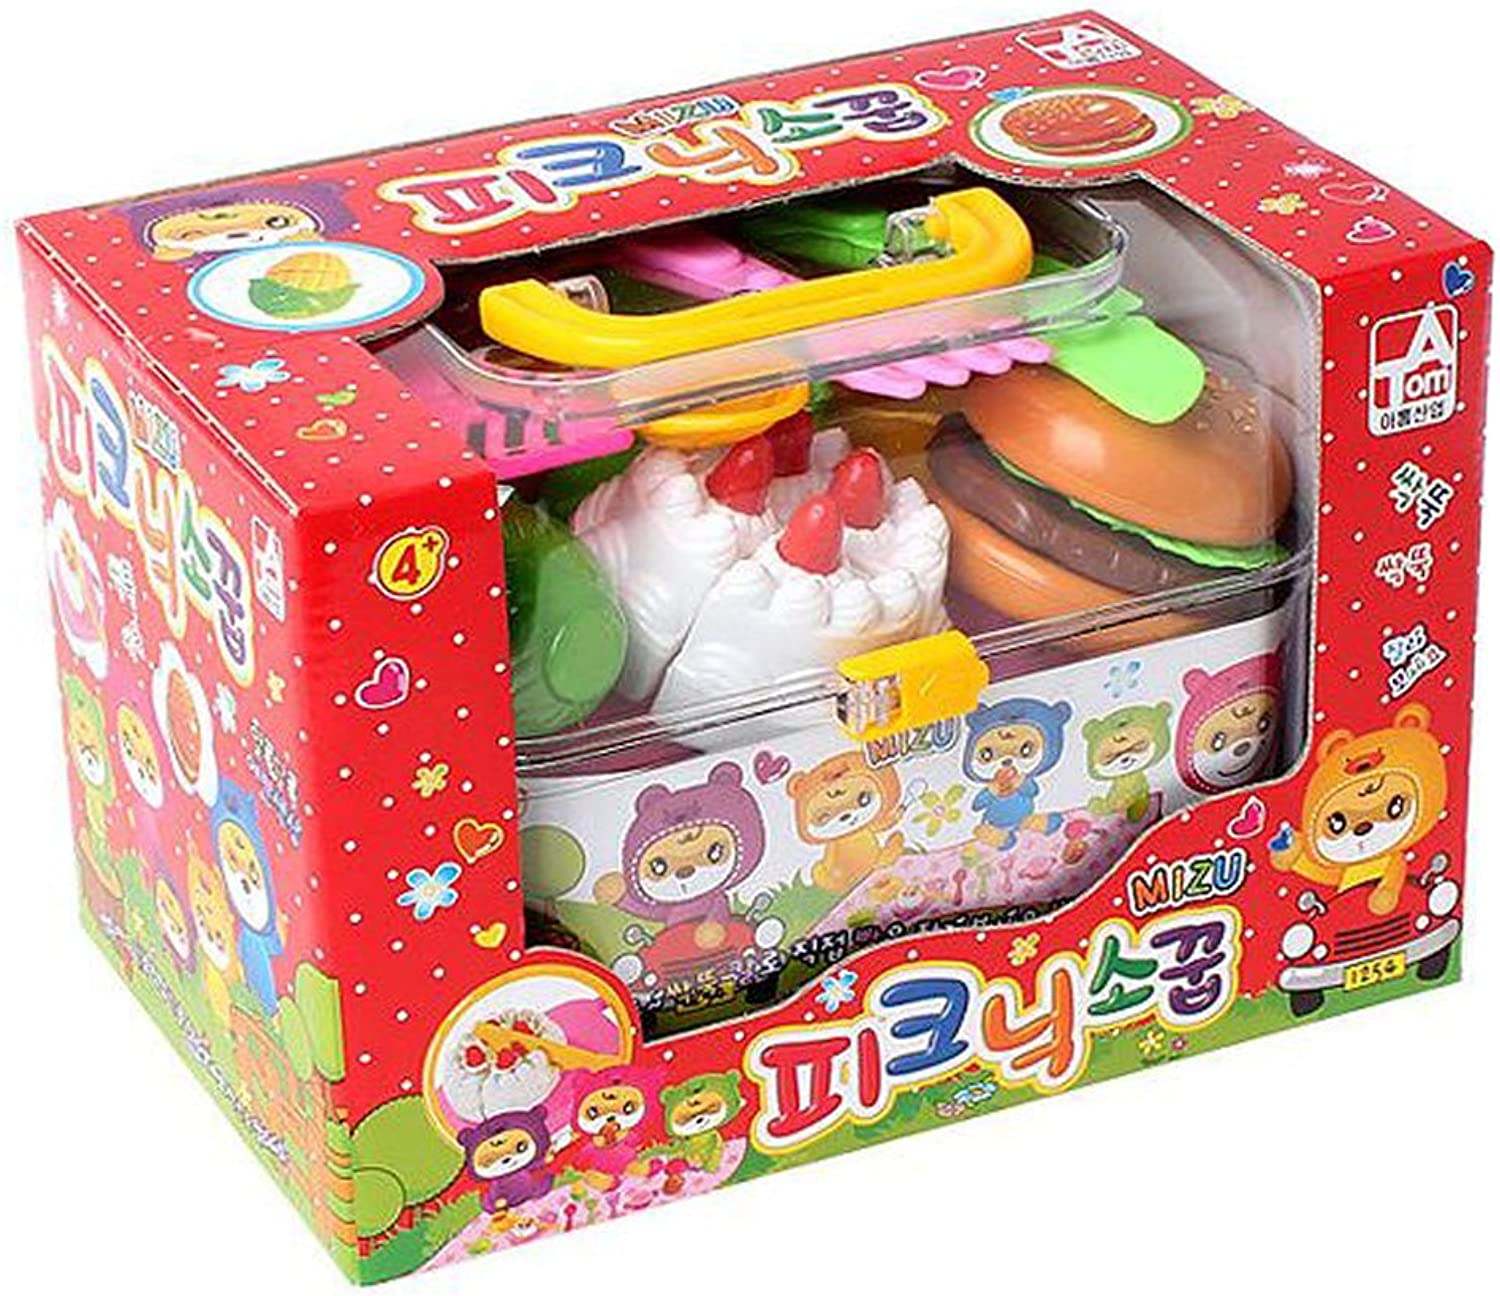 HW GLOBAL Picnic Pretend Toy Set Cutting Burger Cake Play Food Kitchen Educational Toy for Kids